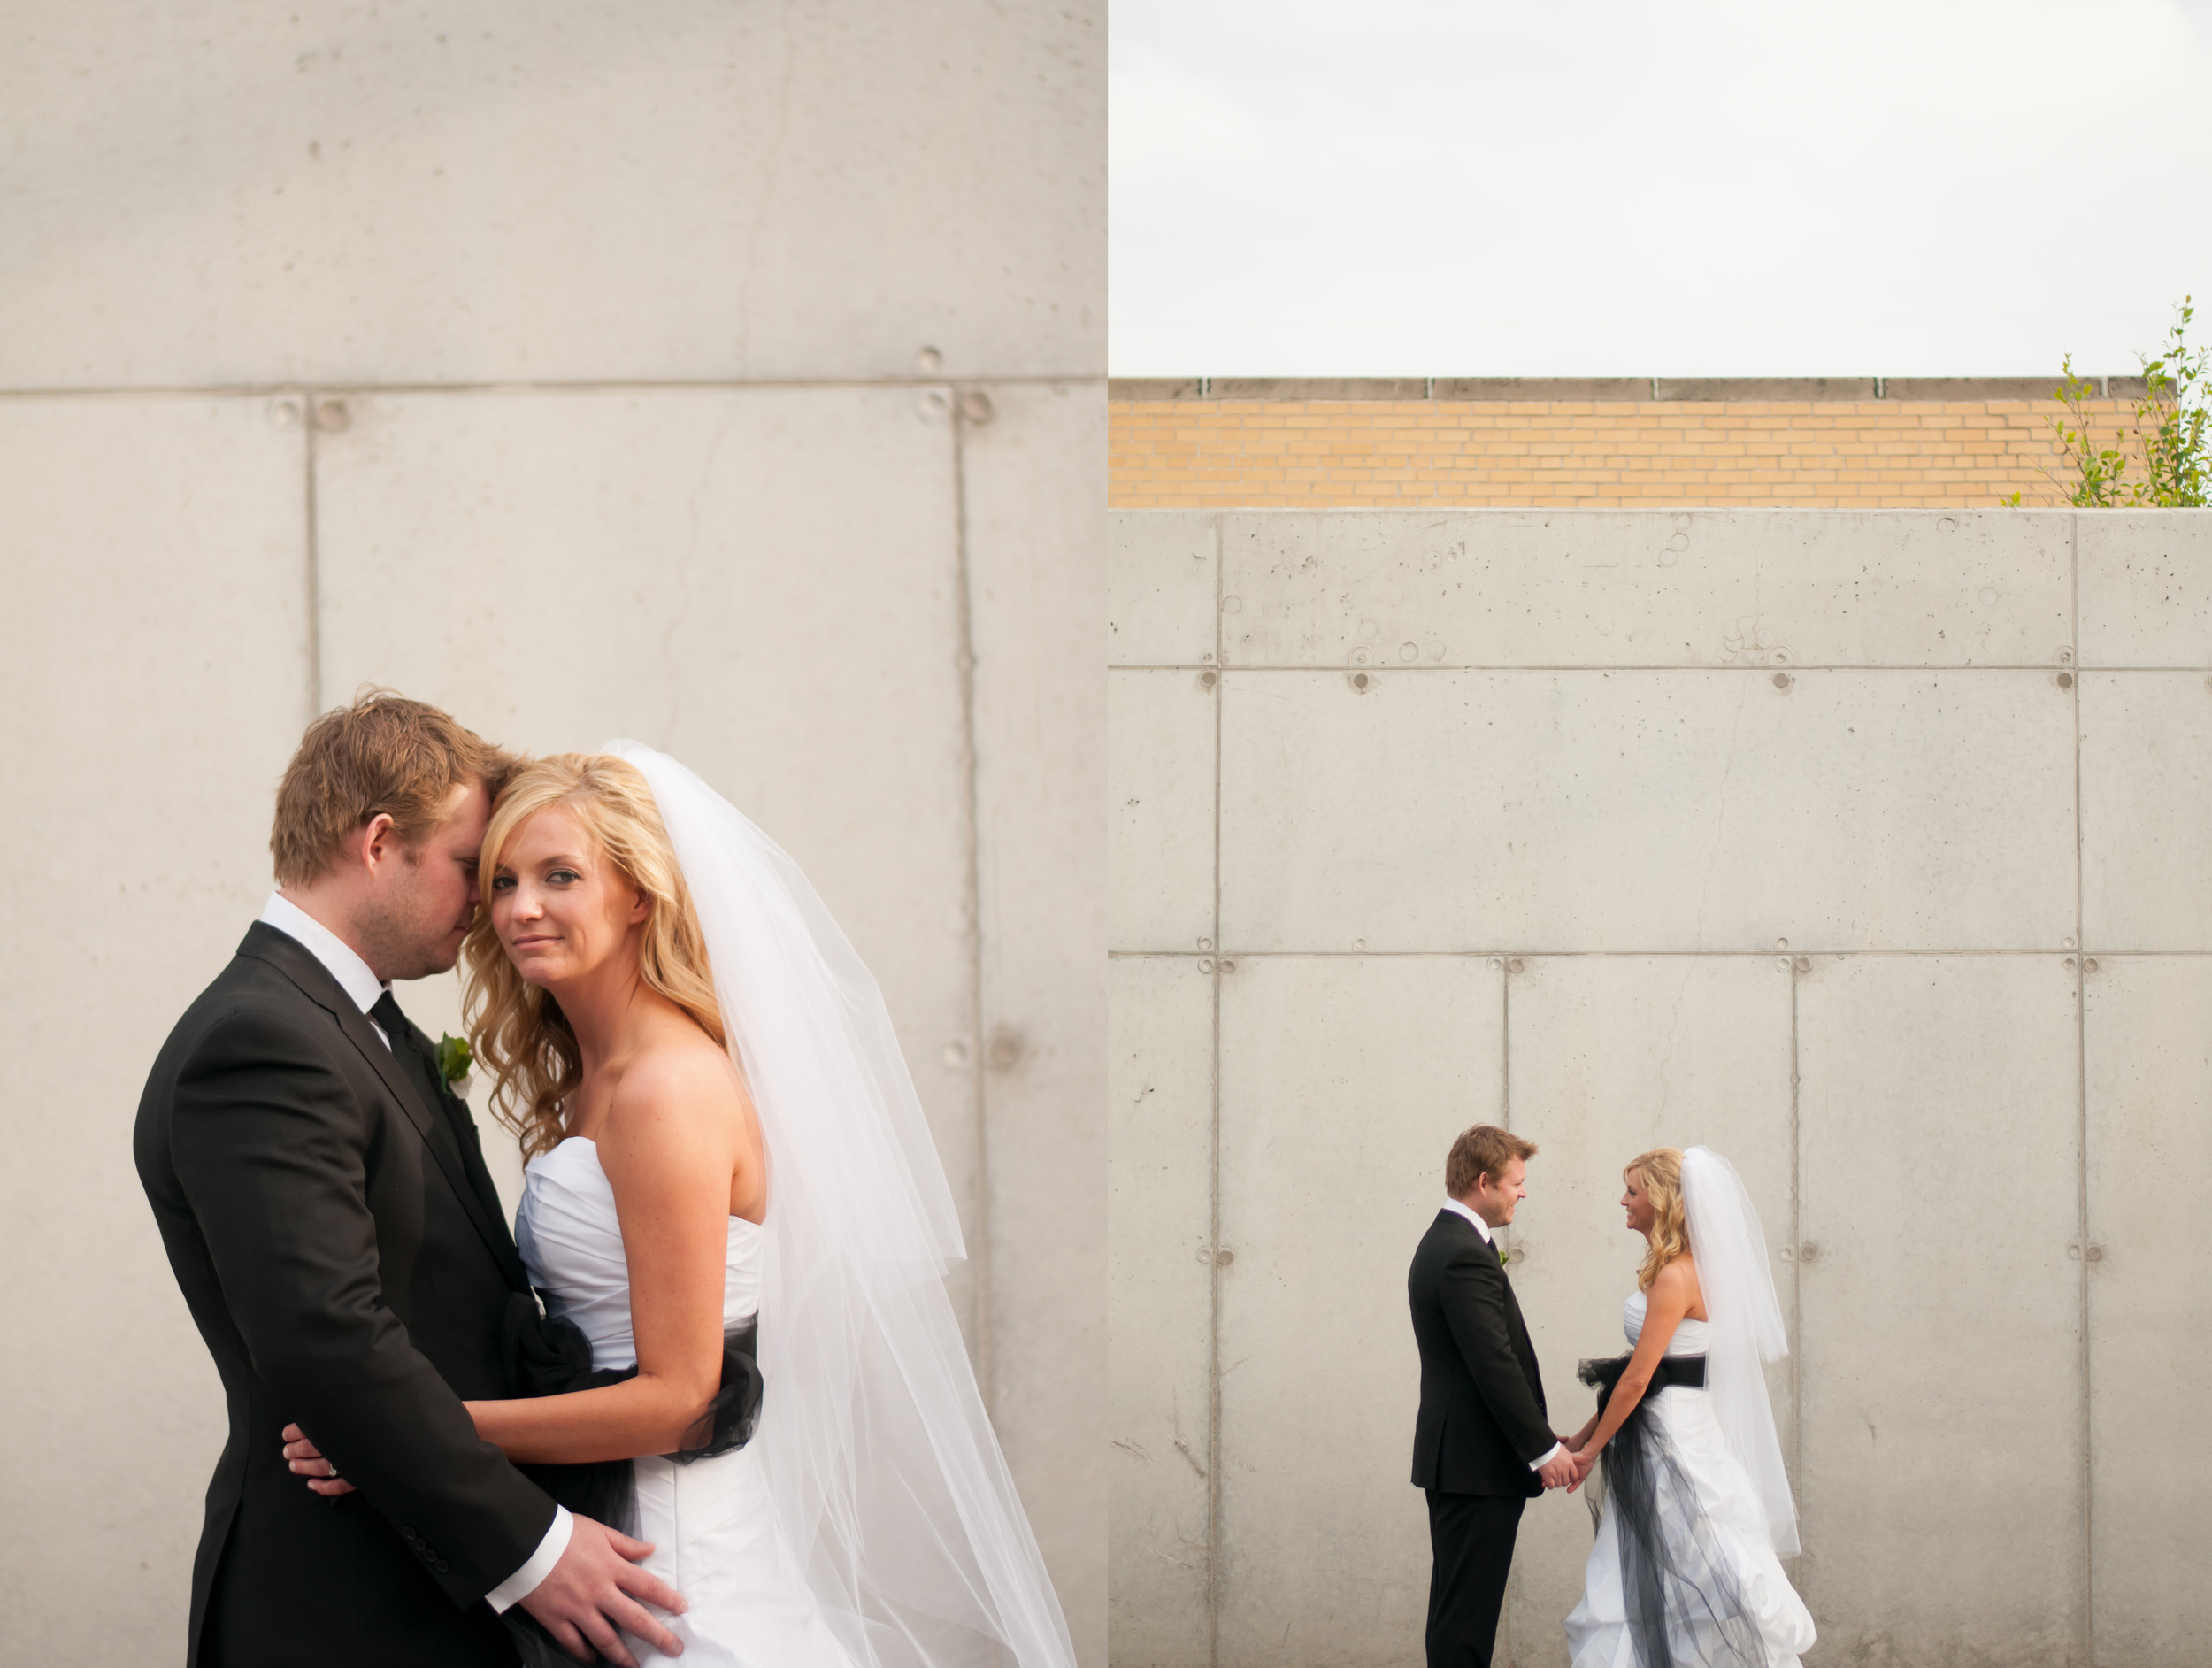 meredith donnelly photography-77.jpg